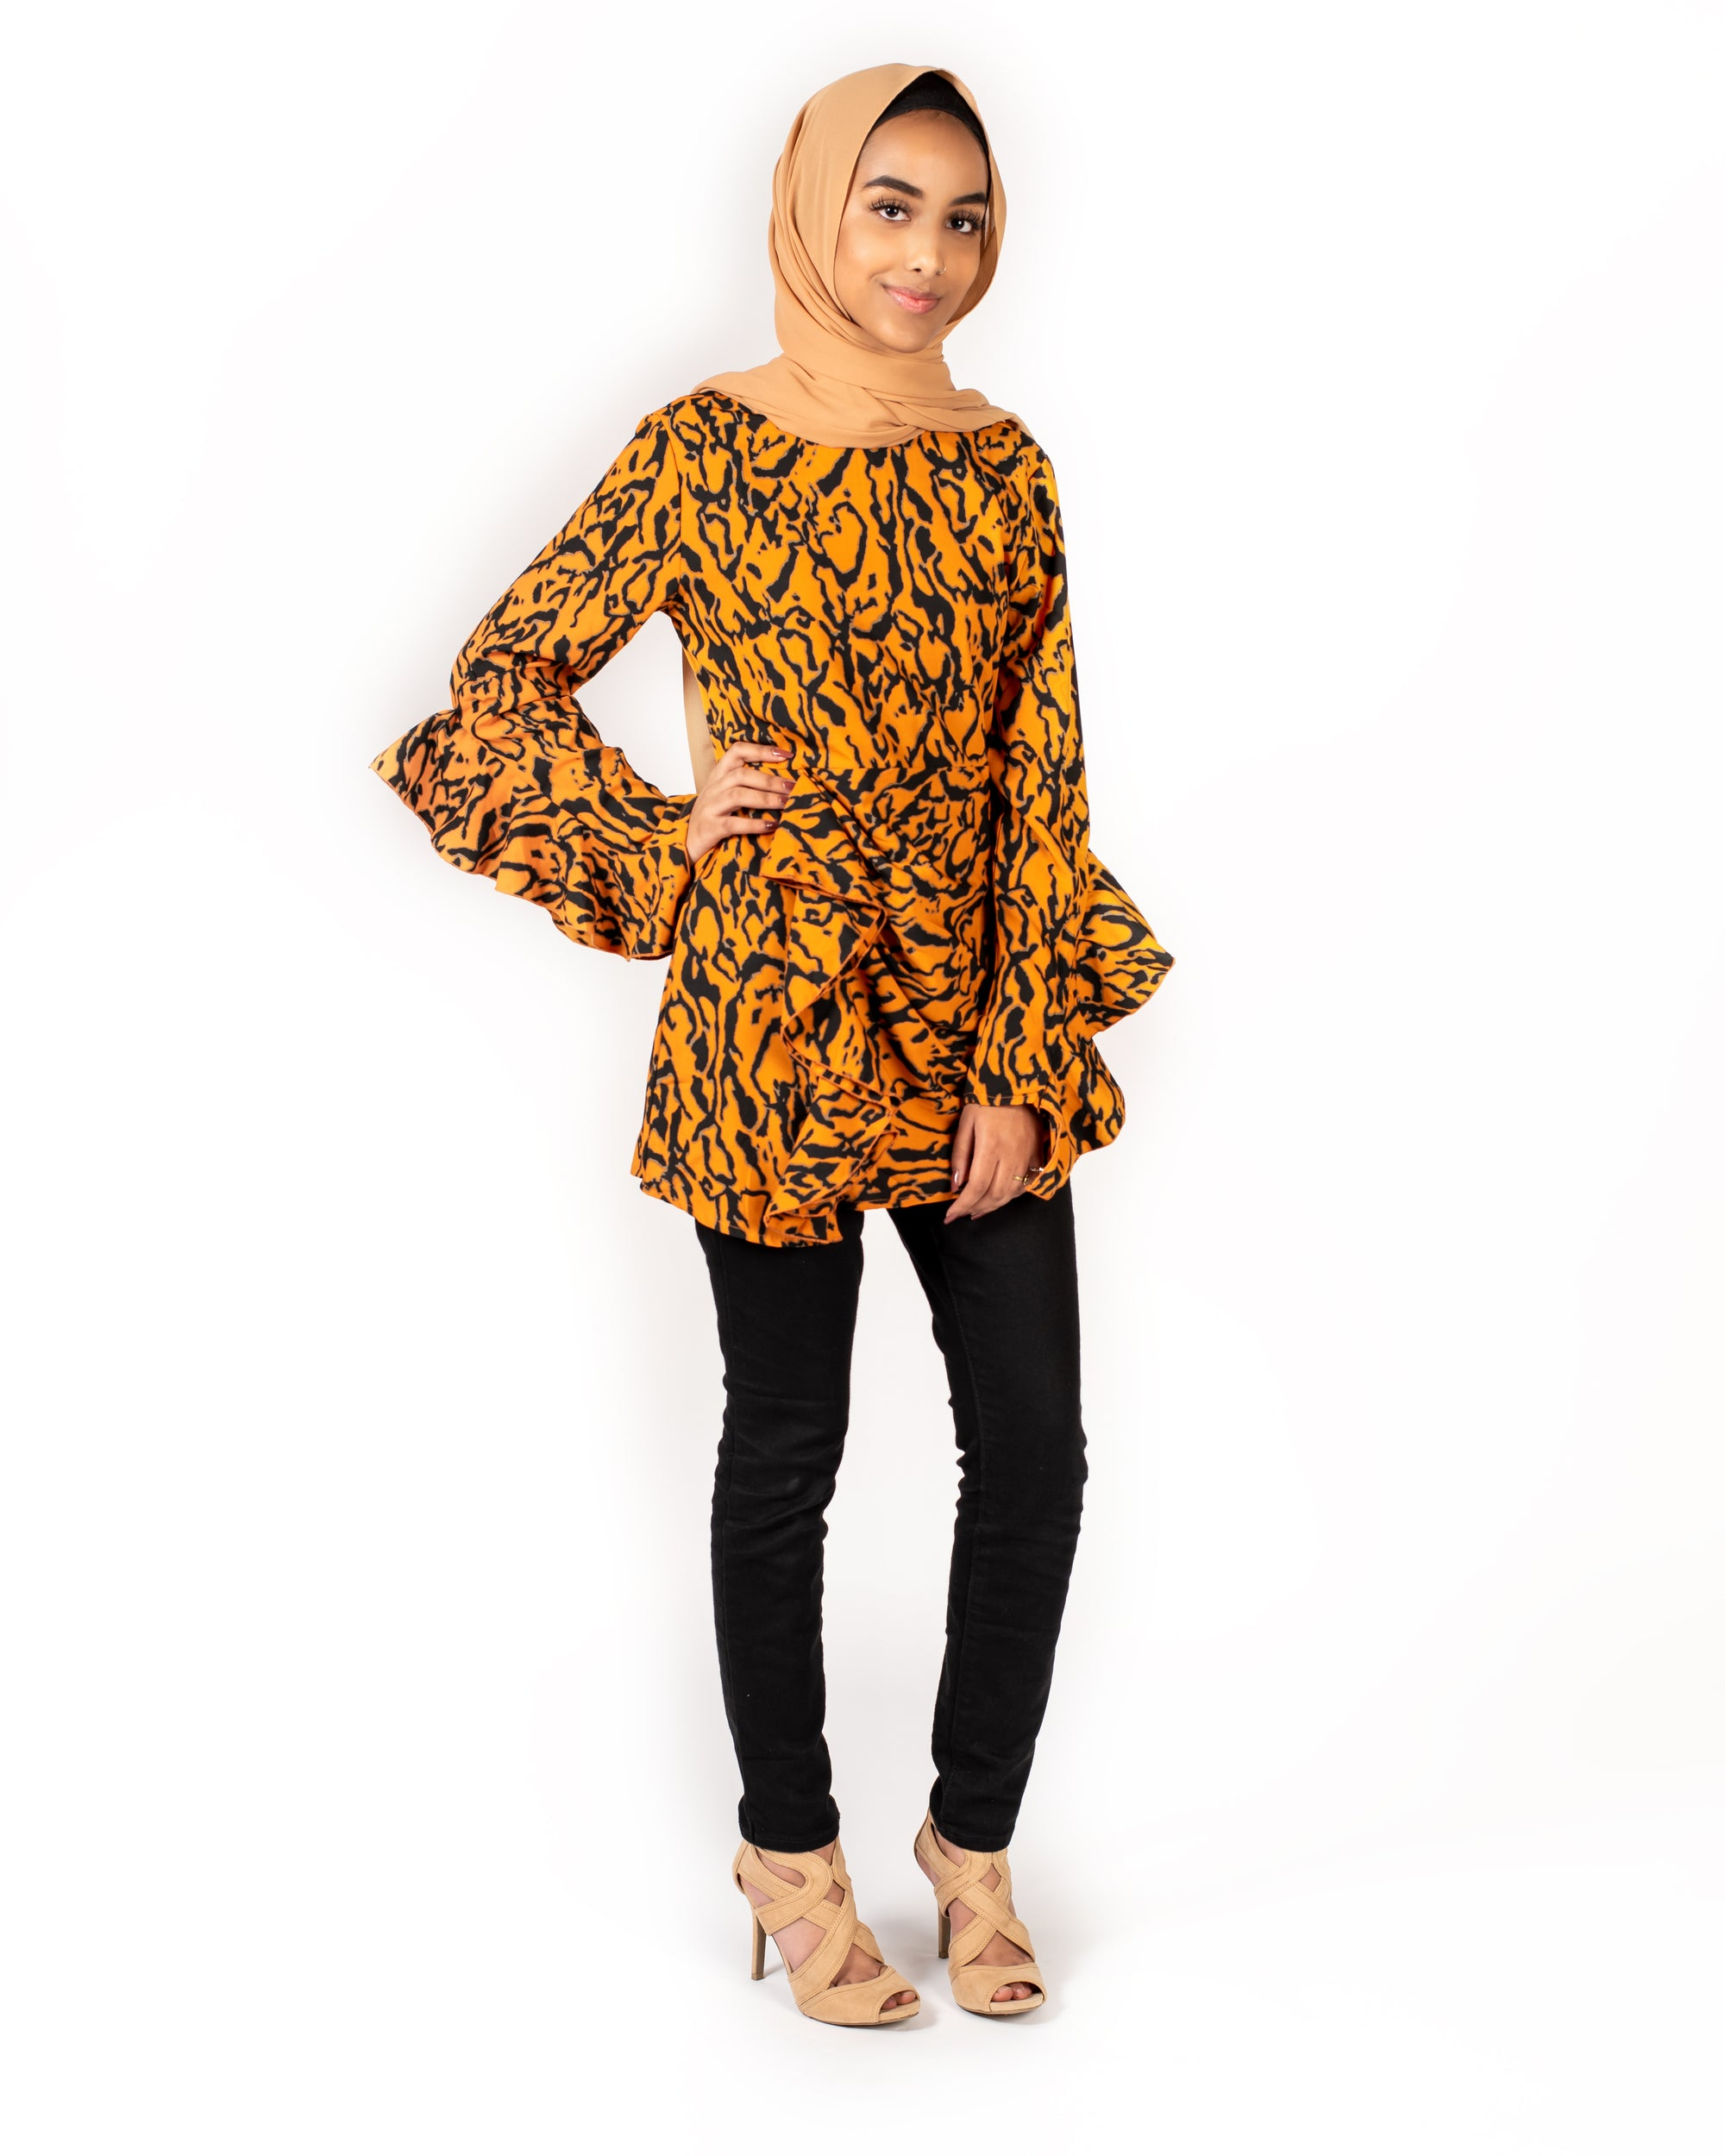 Aria Modest Ruffle Top - Tiger Print - Verona Collection